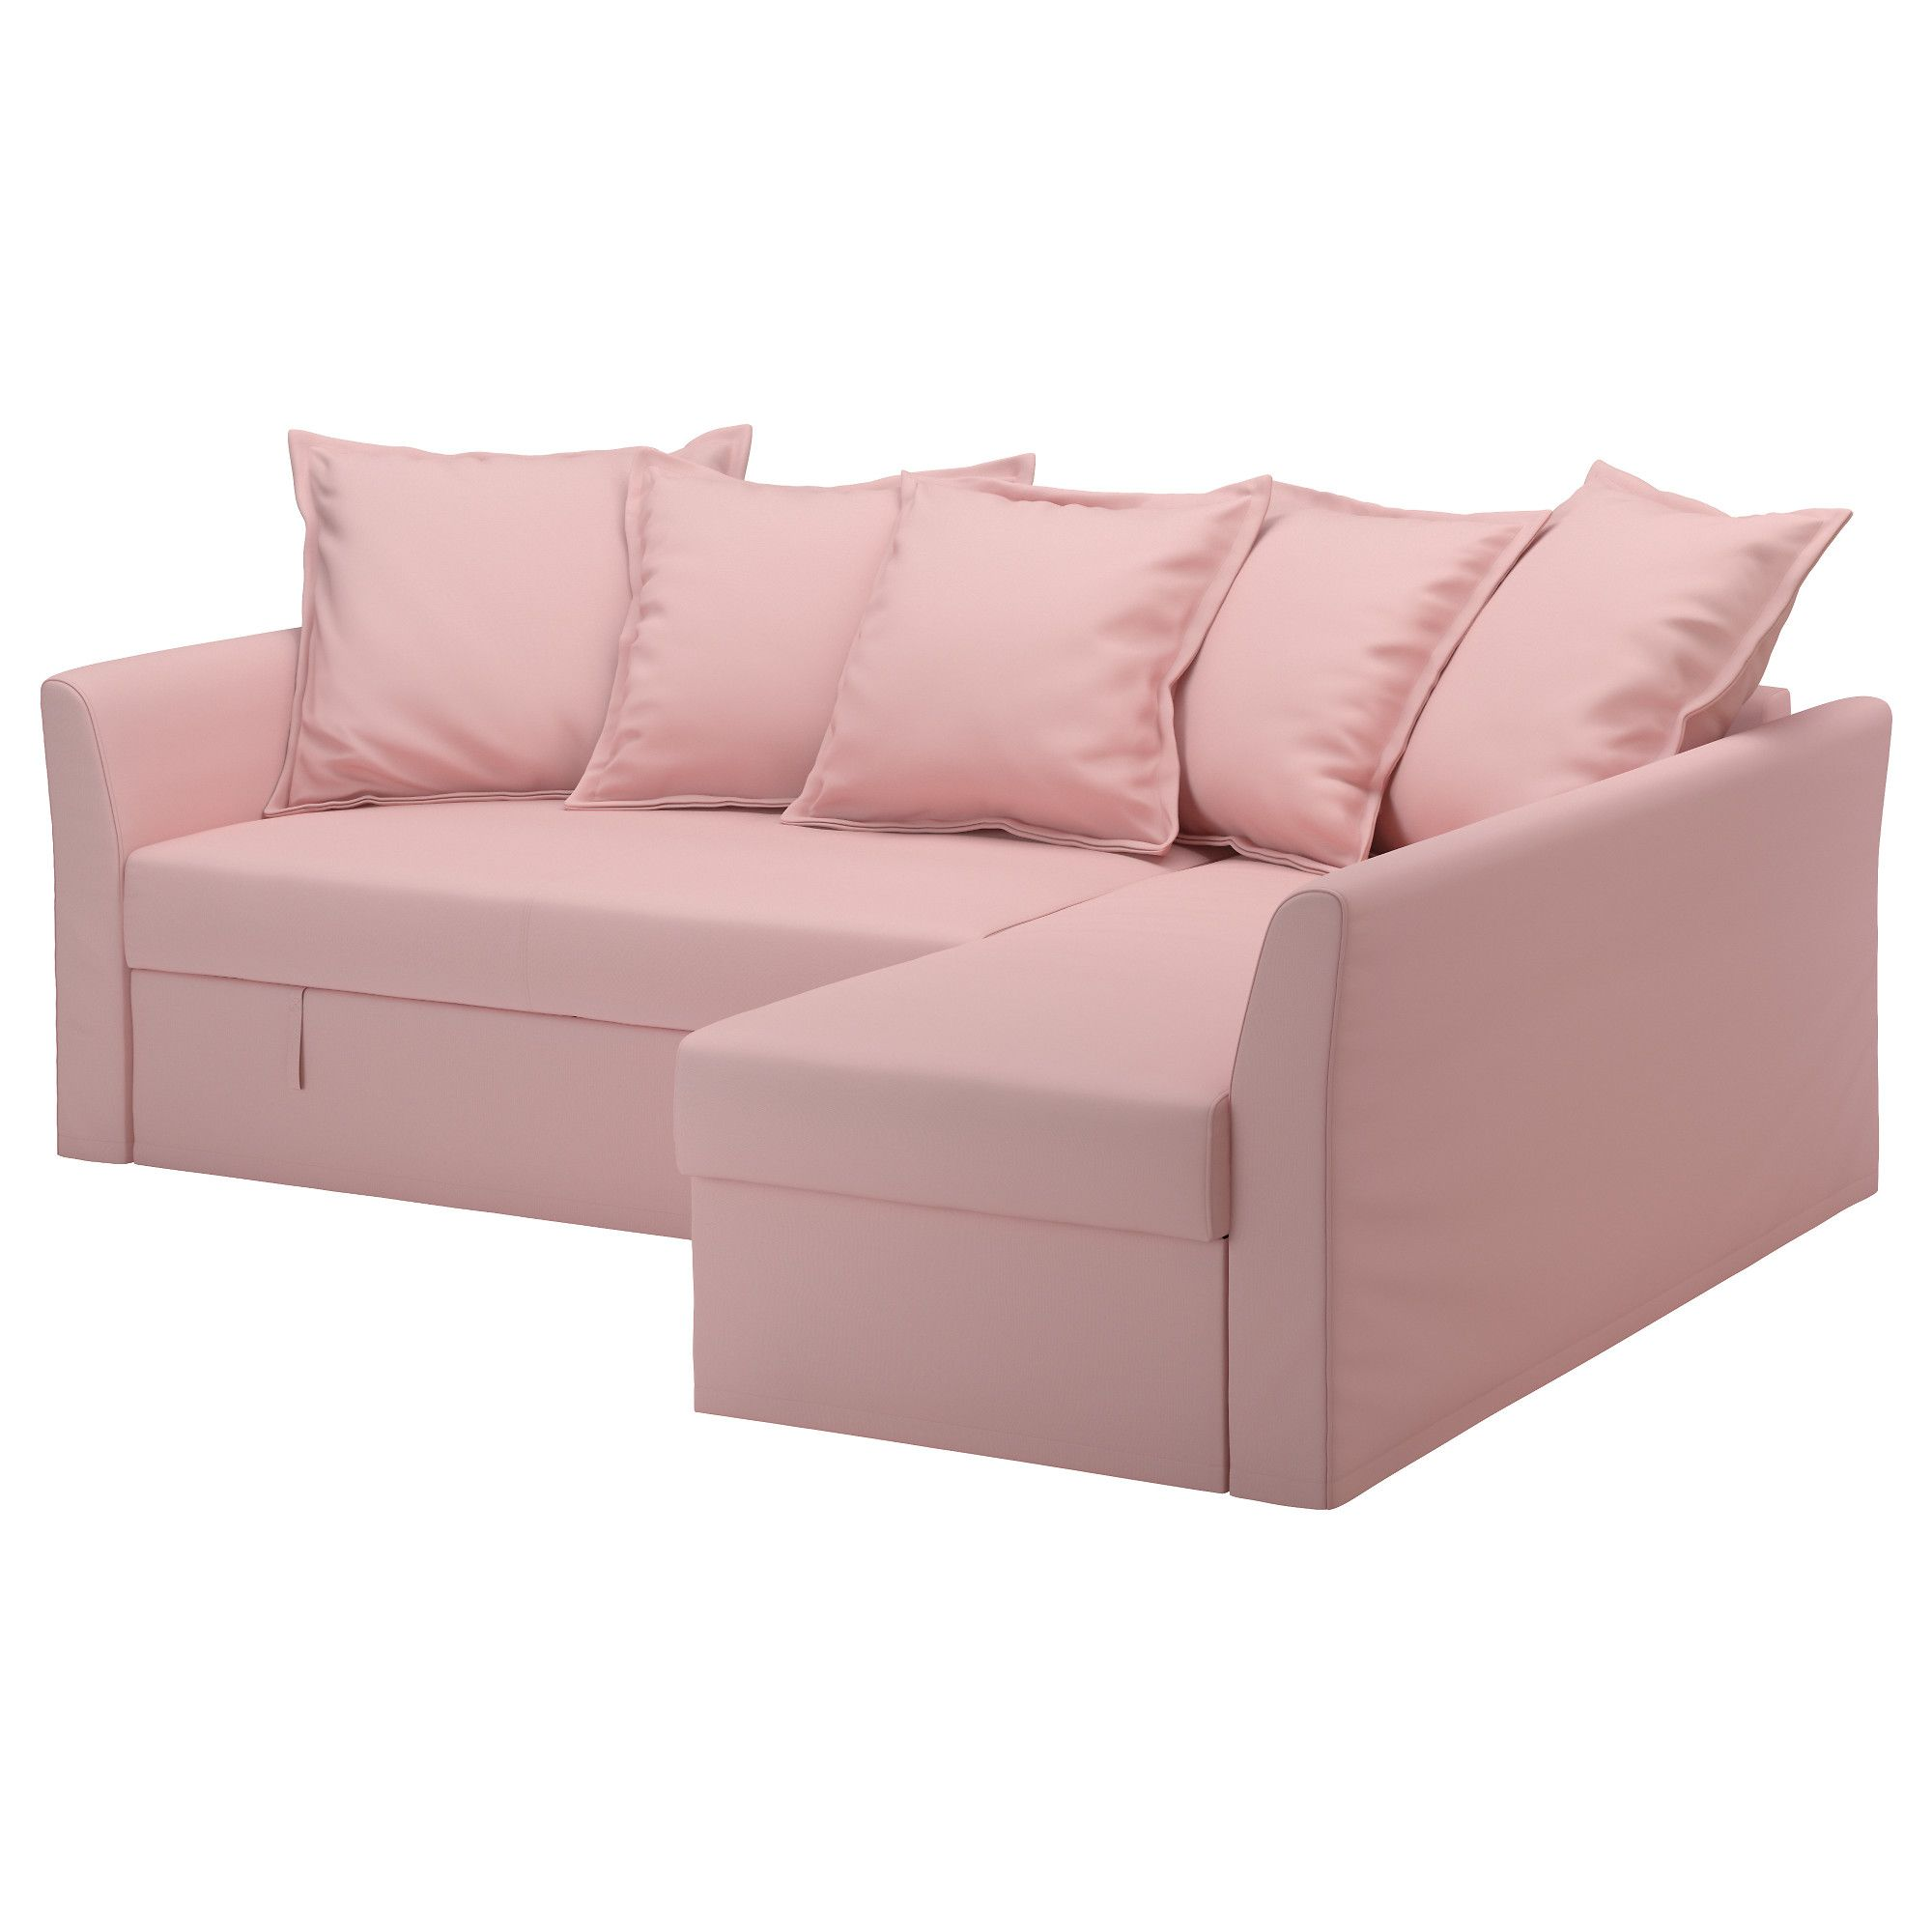 IKEA HOLMSUND Sofa bed with chaise Ransta light pink Cover